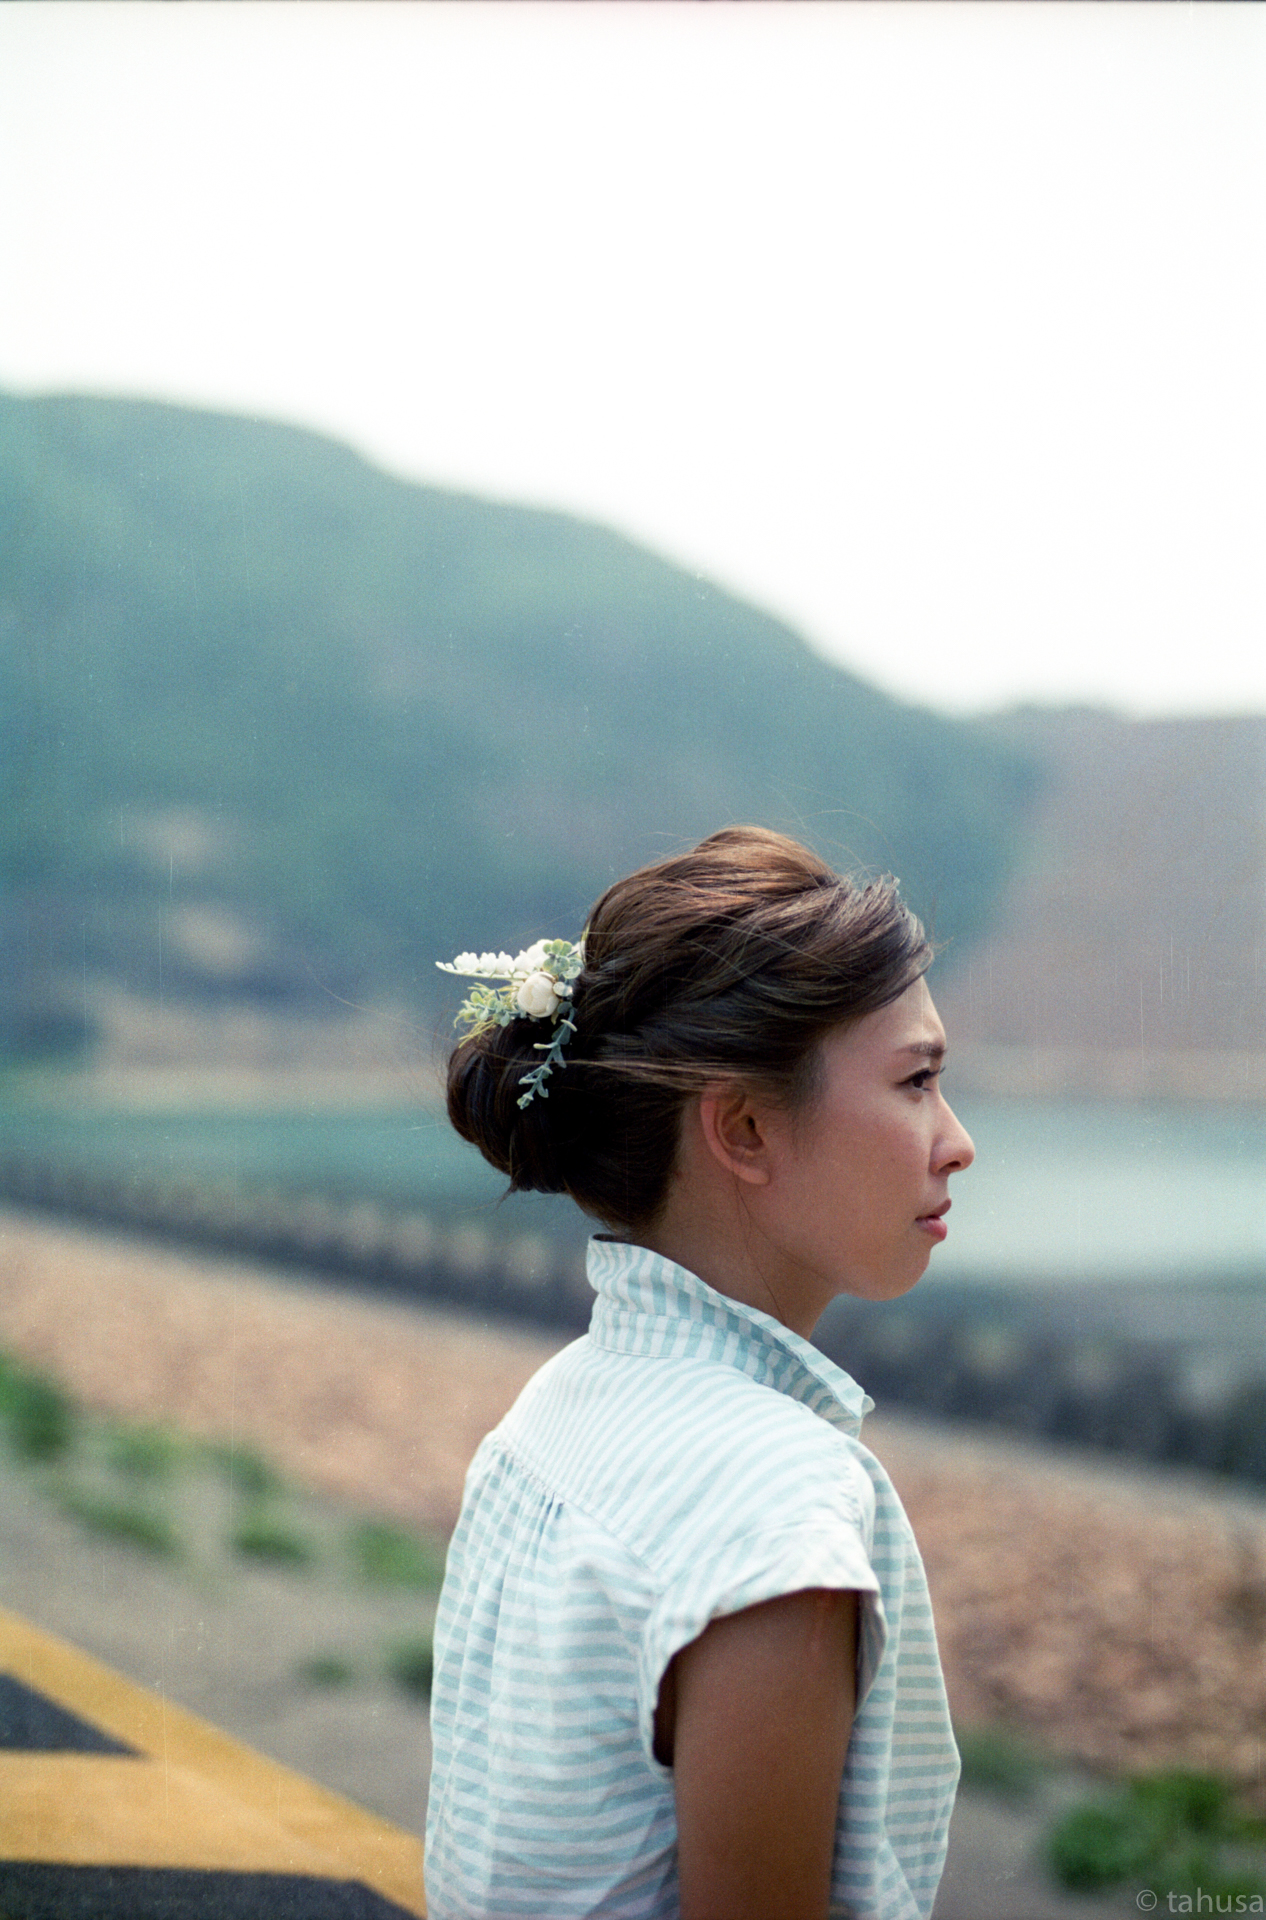 Laam-denise-prewedding-pre-wedding-hongkong-hk-hong-kong-cinestill-cinestill50-cinestill50D-iso200-pushed-hot-weather-east-dam-water-portrait-Nikon-f100-film-camera-50mm-f1.4D-1.4